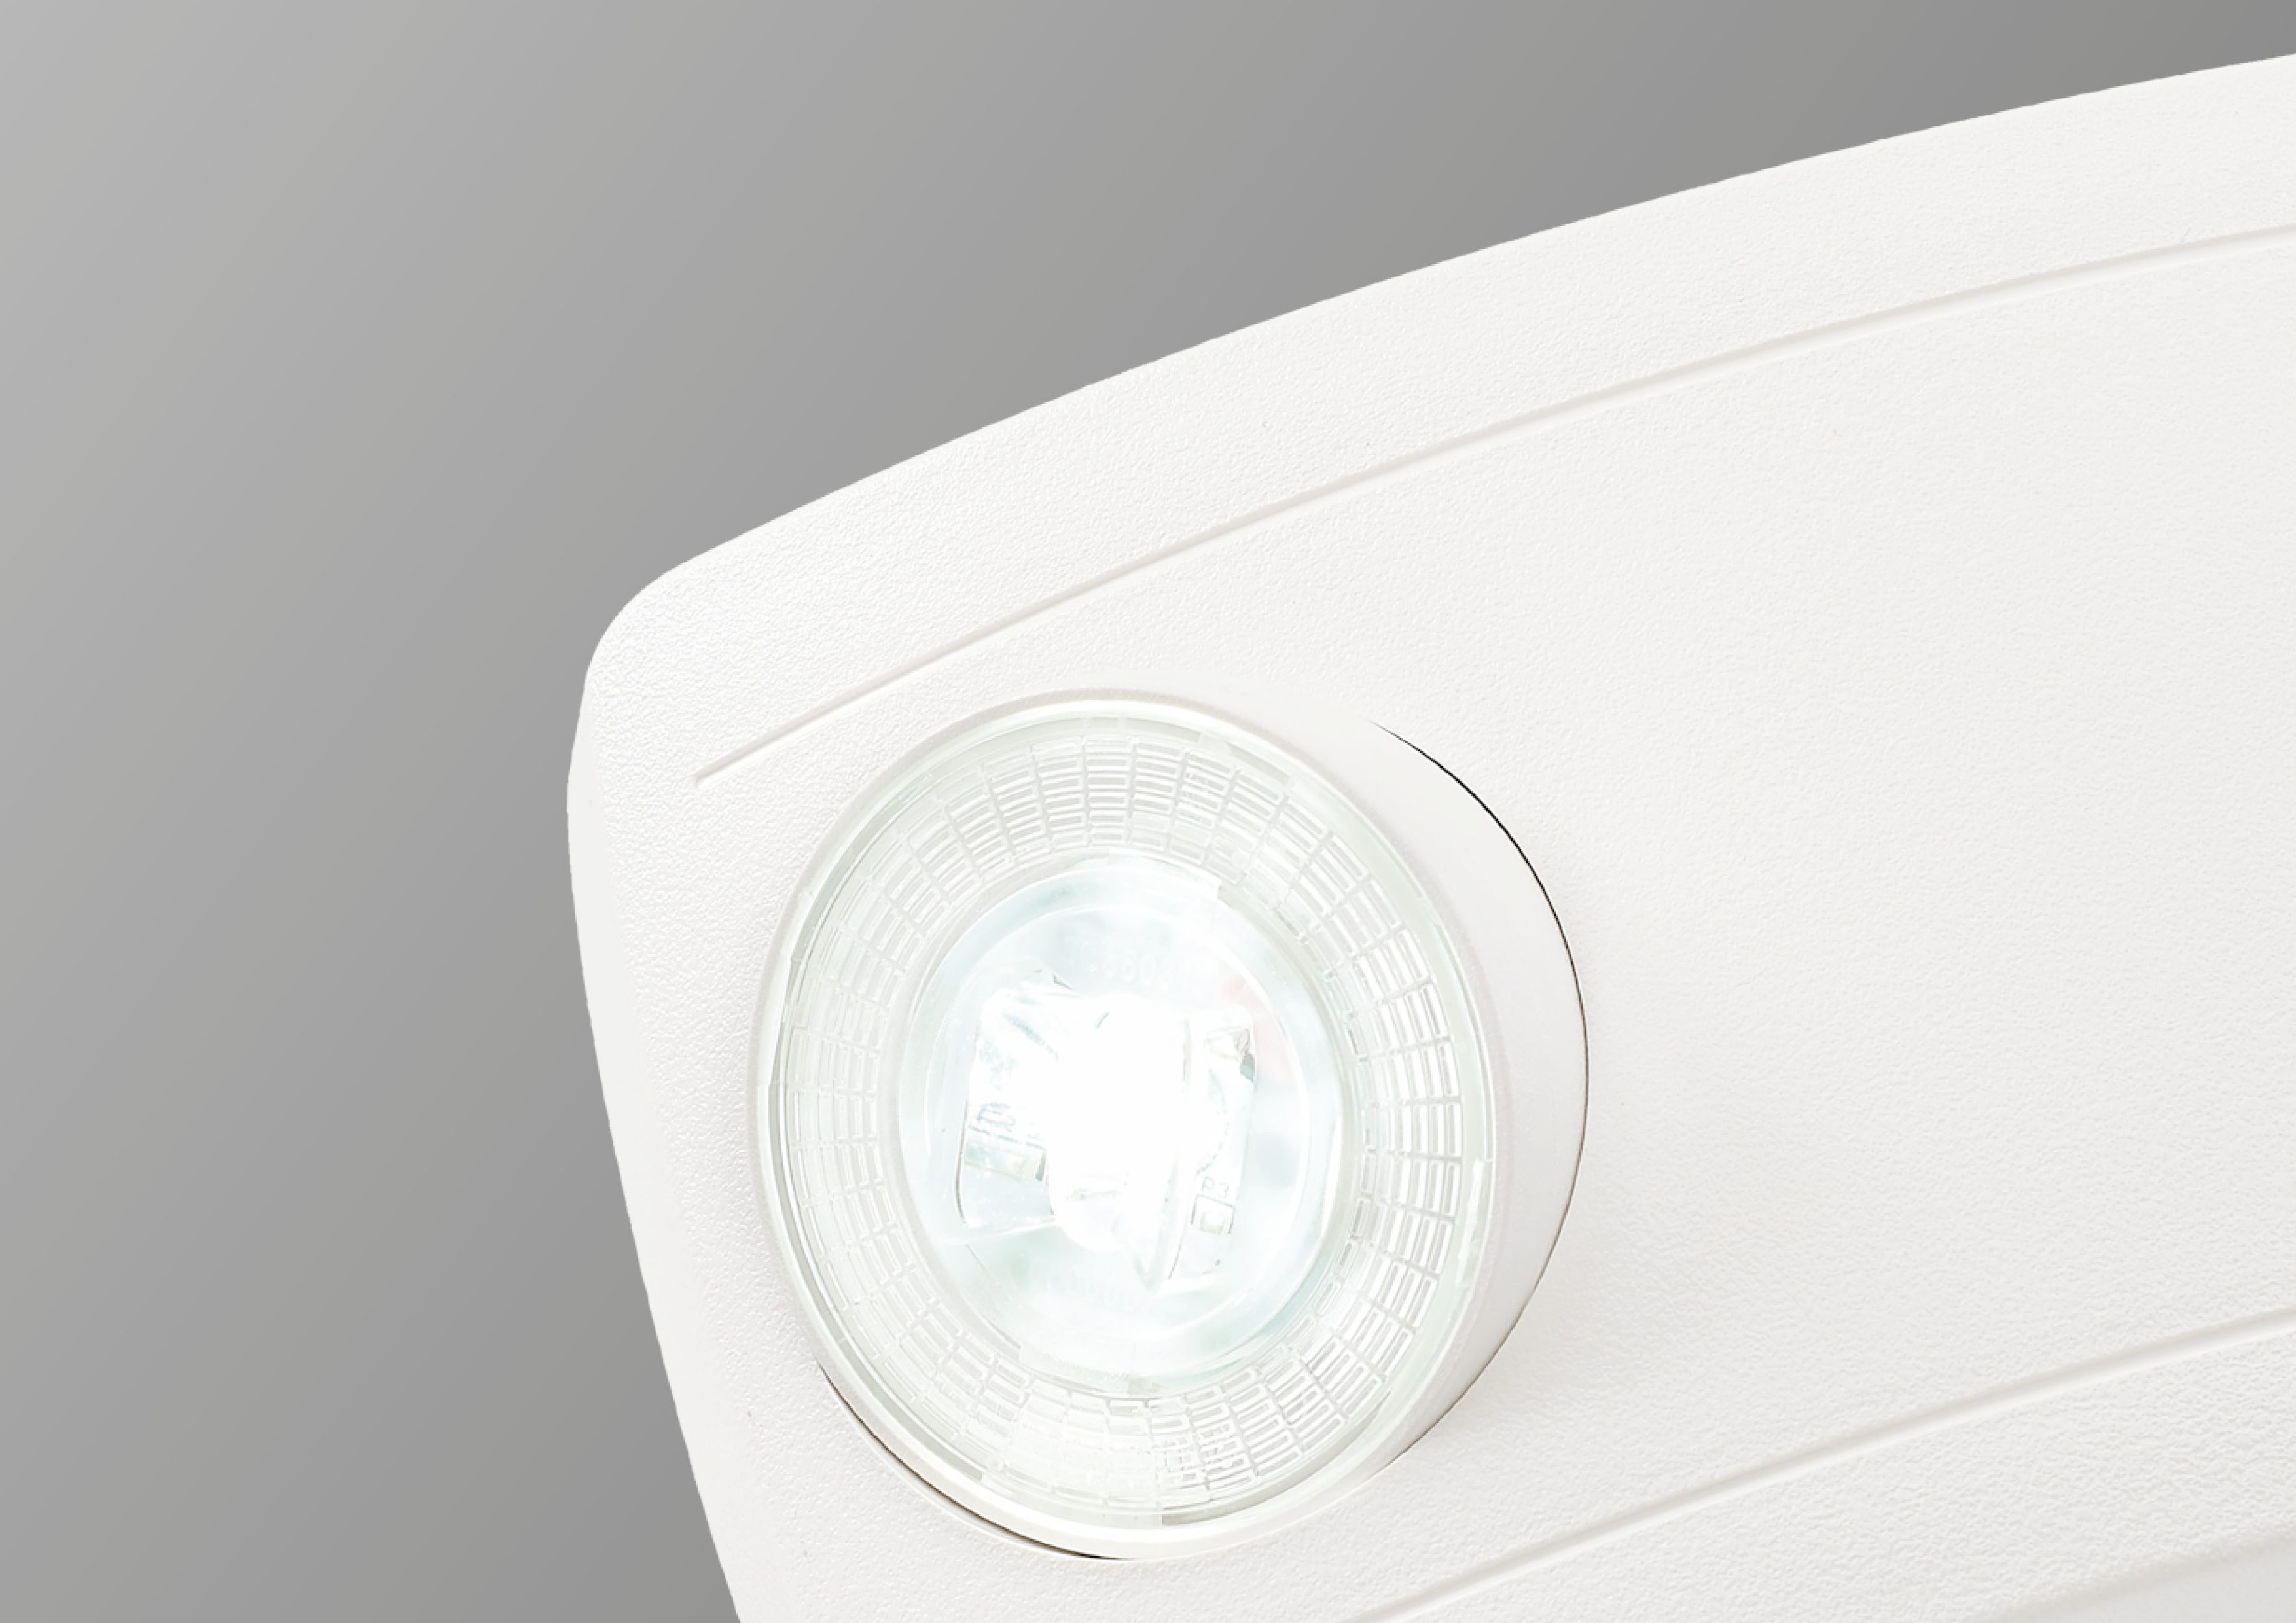 https://contrac-lighting.co.uk/wp-content/uploads/2018/01/EMFROGMINI-1.jpg